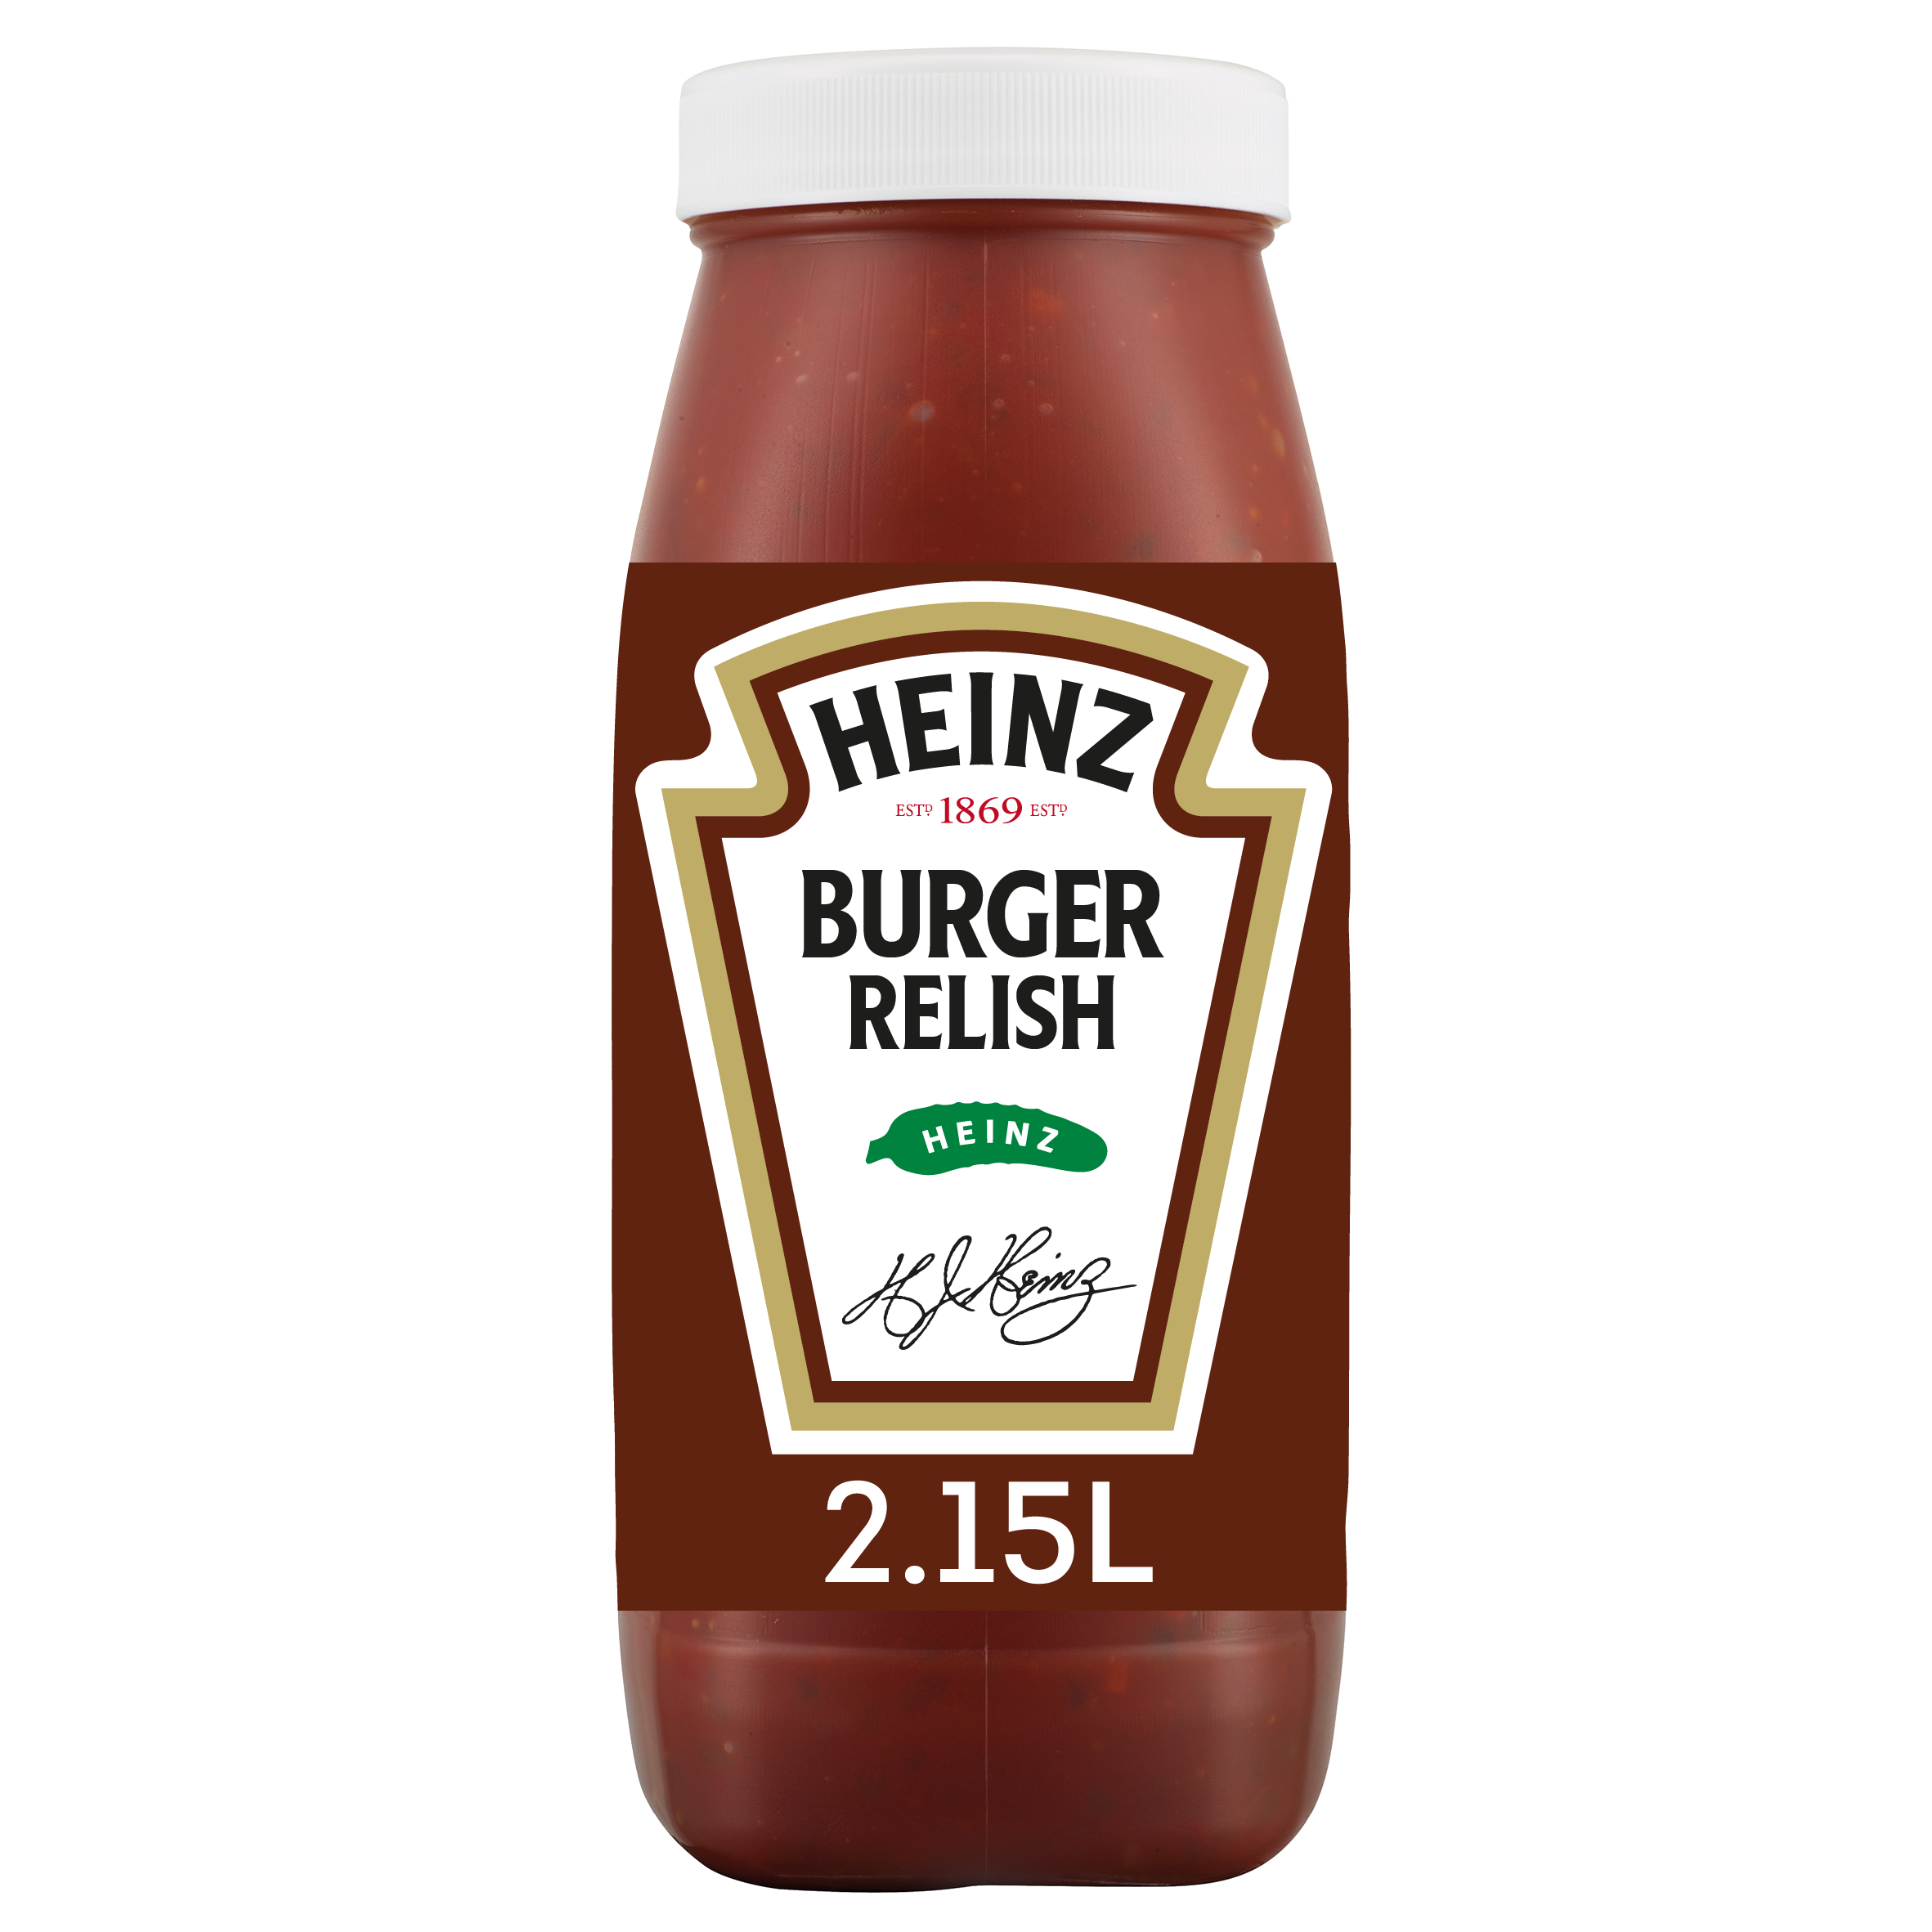 Heinz Burger Relish 2.15L Jars image